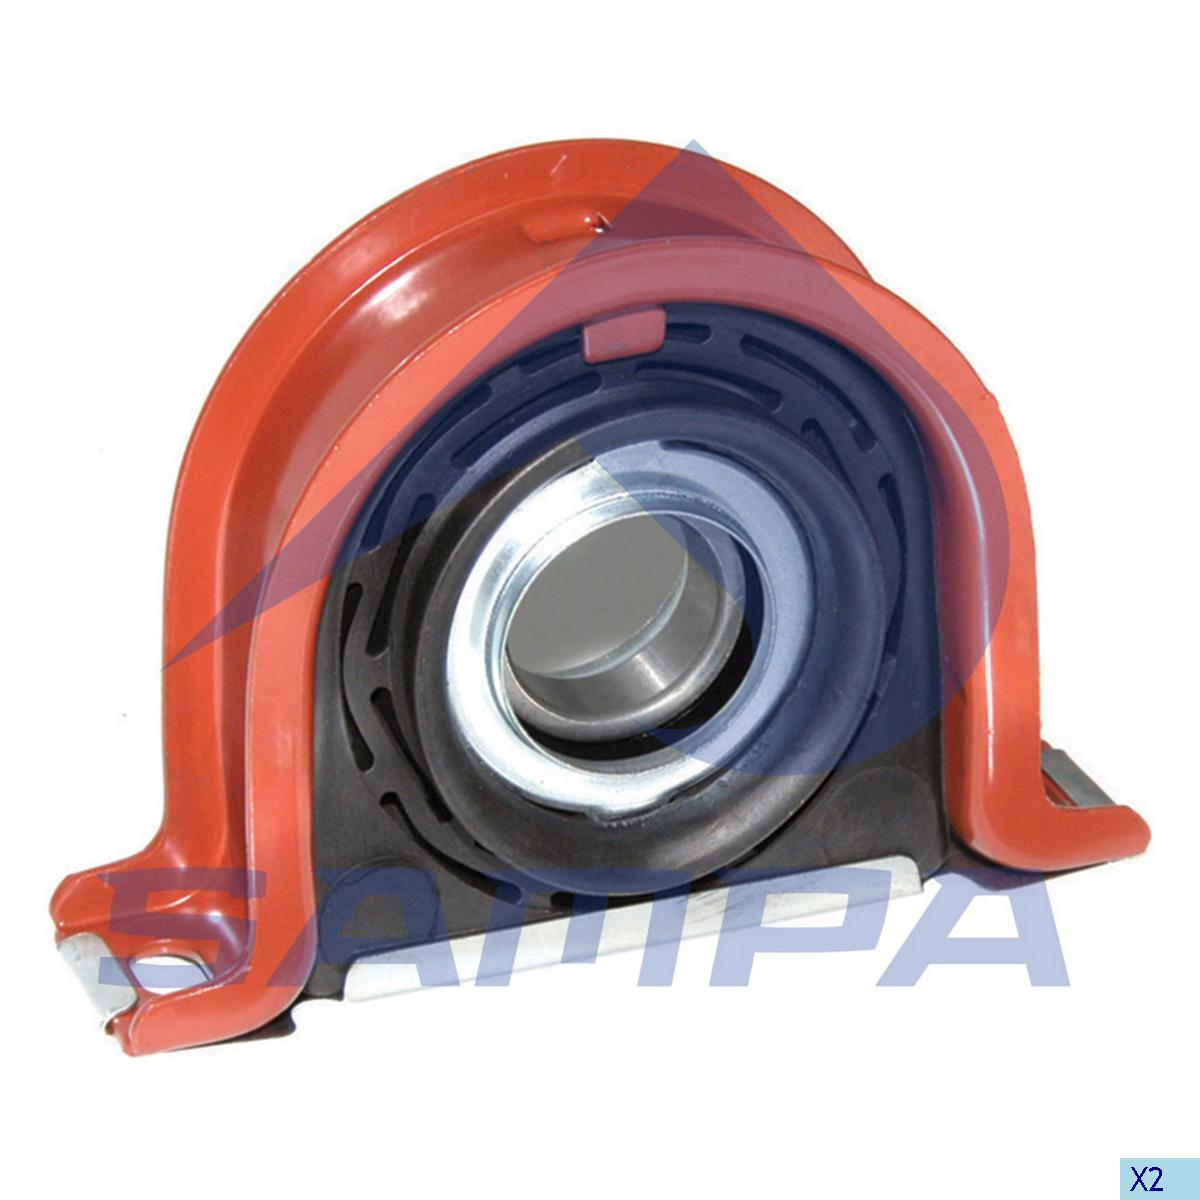 Propeller Shaft Bearing, Iveco, Propeller Shaft